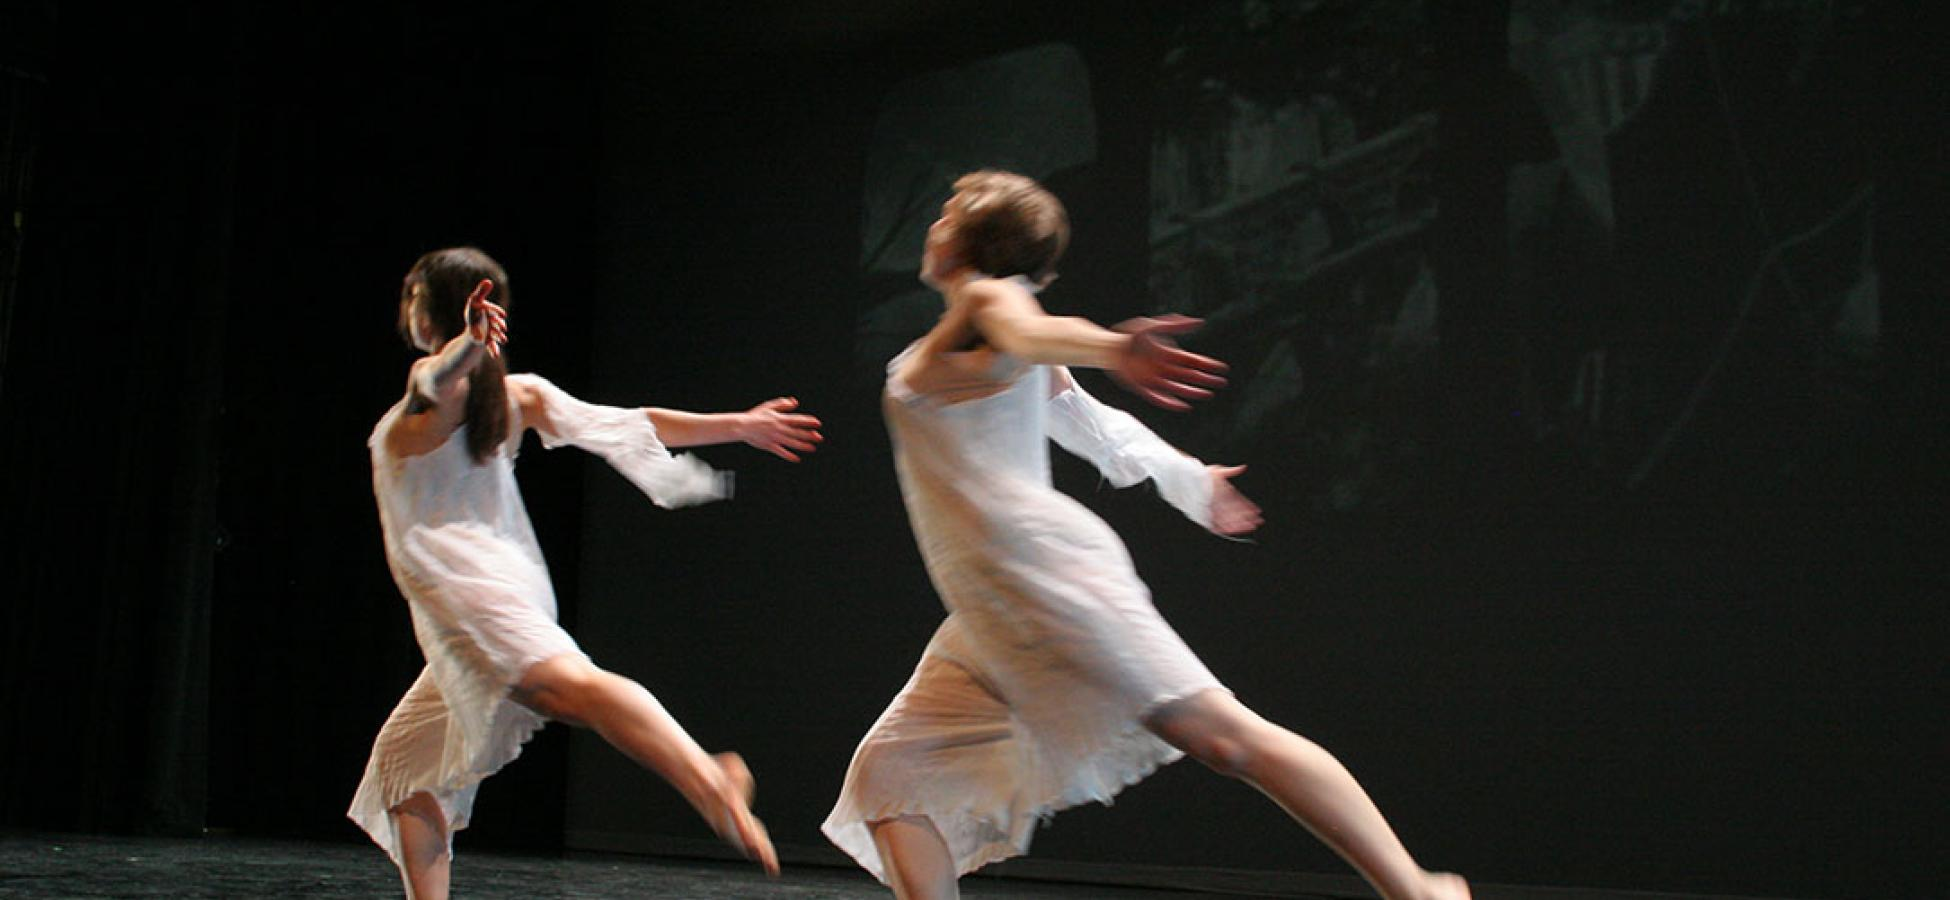 two dancers in white swooping leftward on black stage